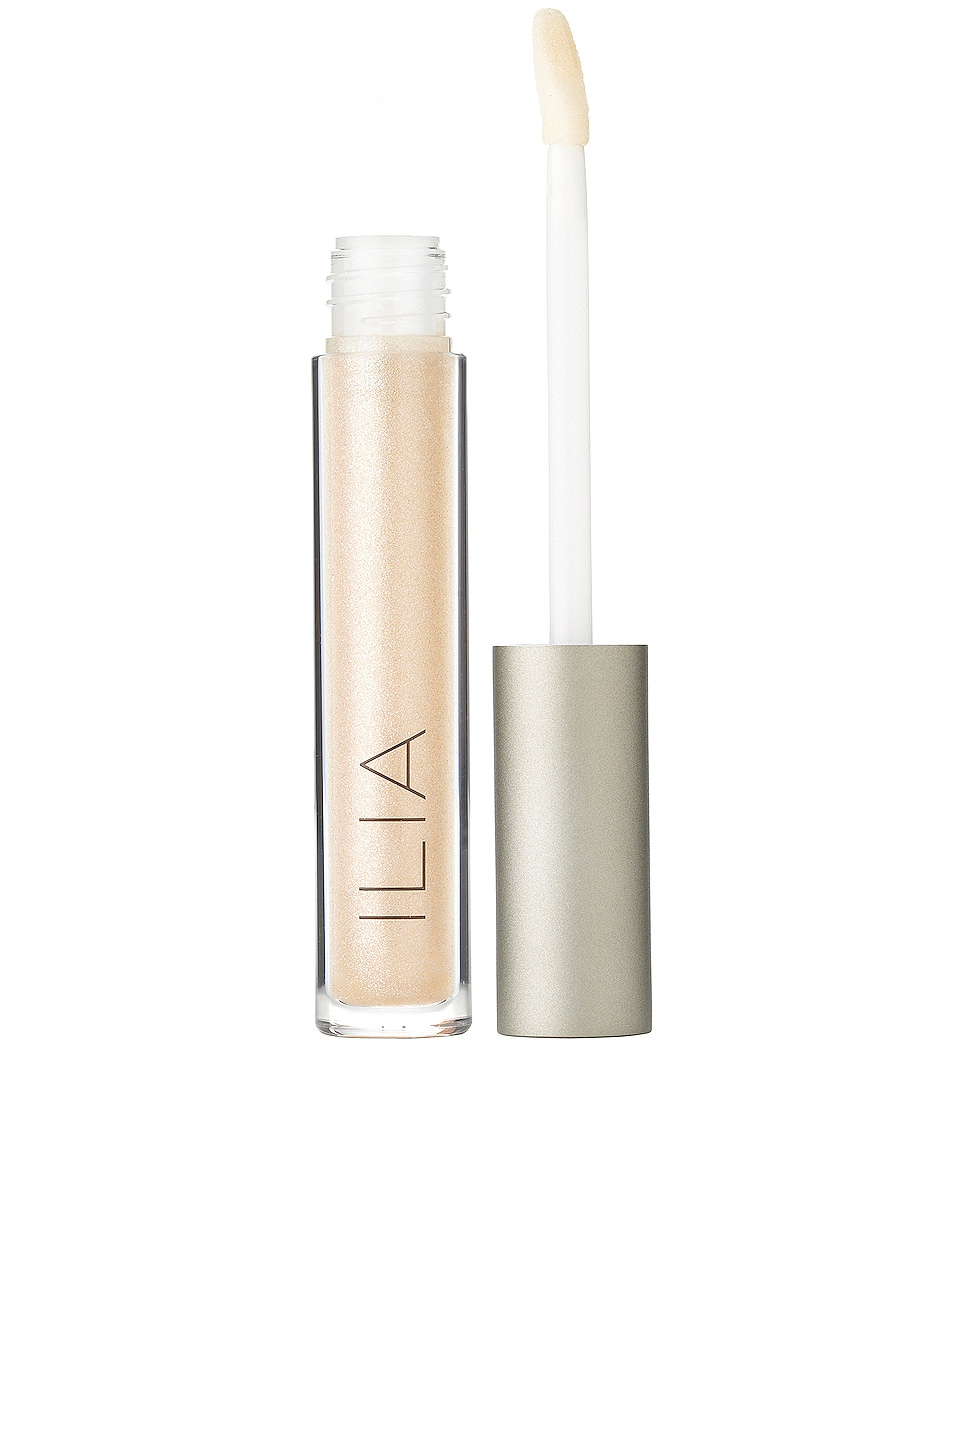 Ilia Lip Gloss in White Rabbit